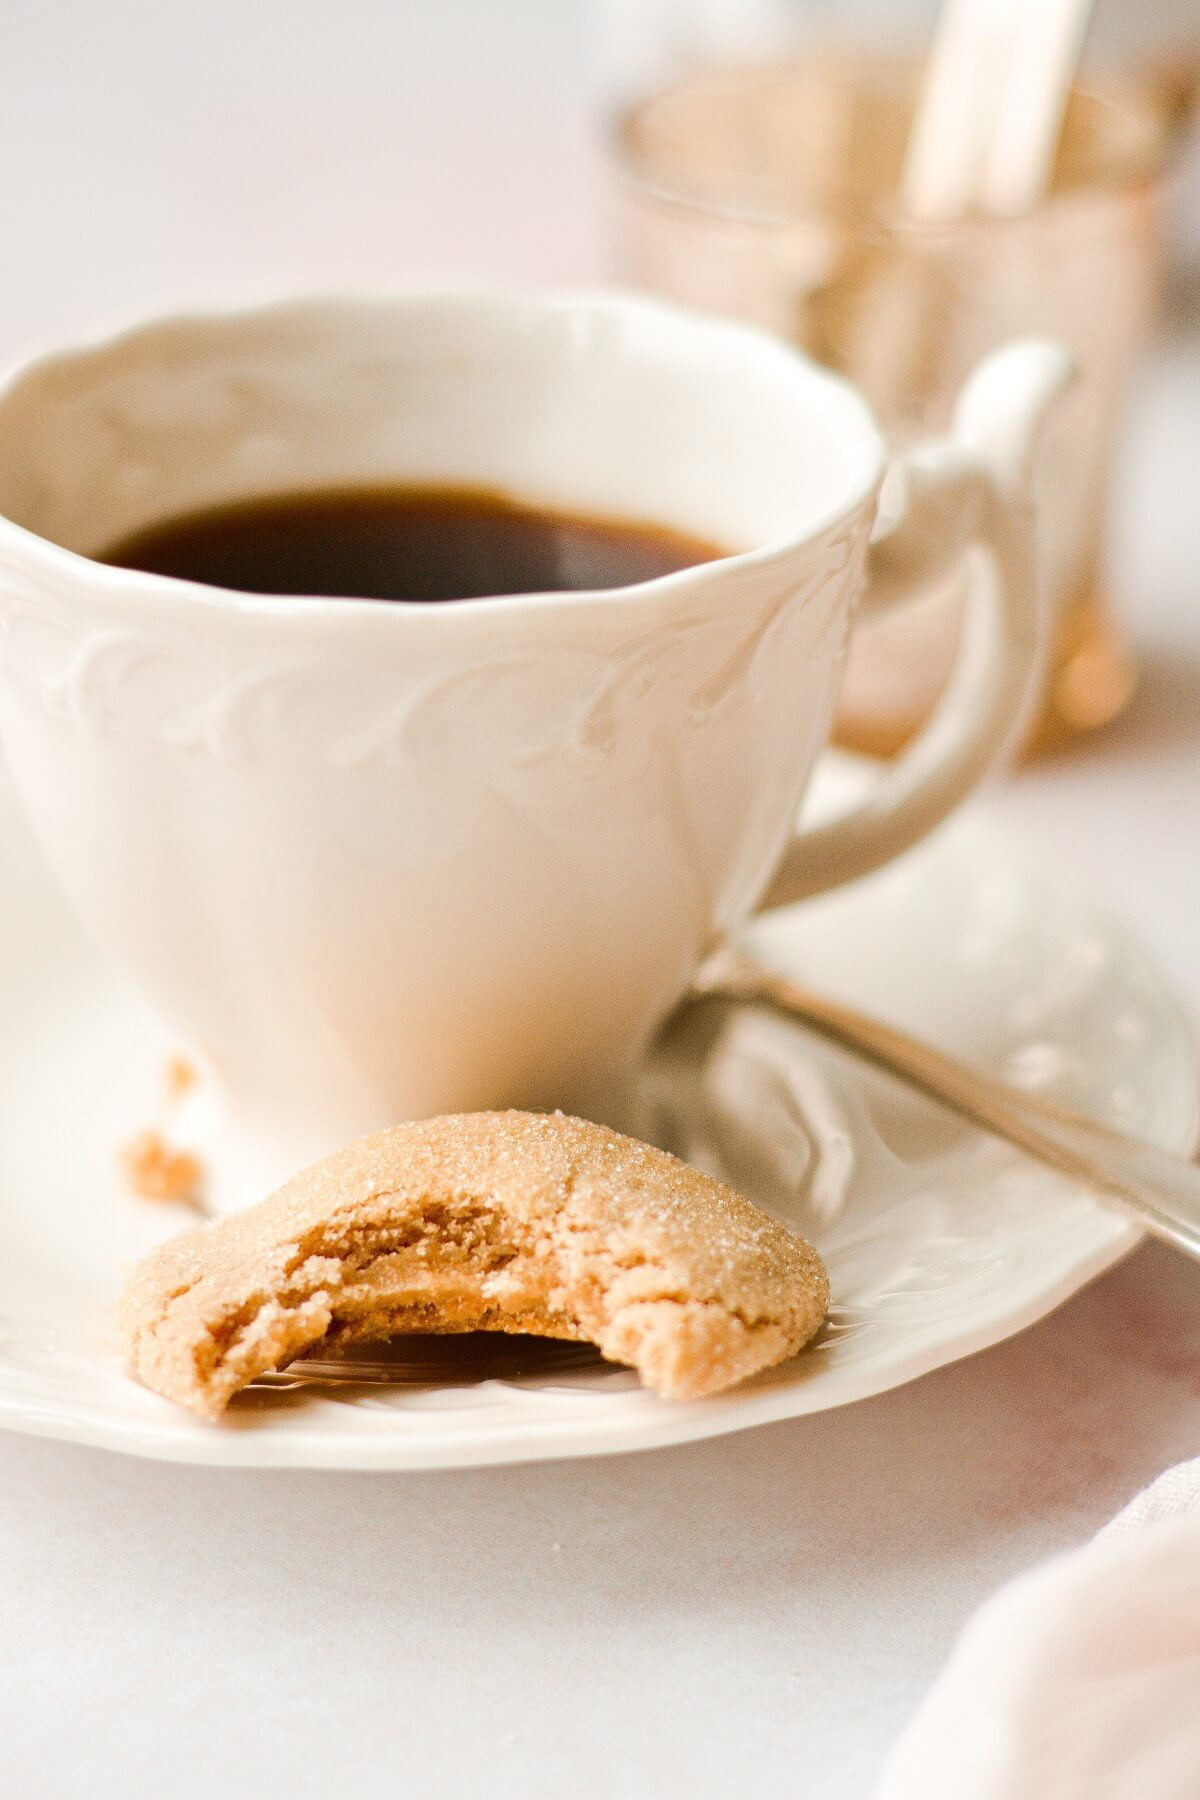 A half eaten maple cookie next to a cup of coffee.